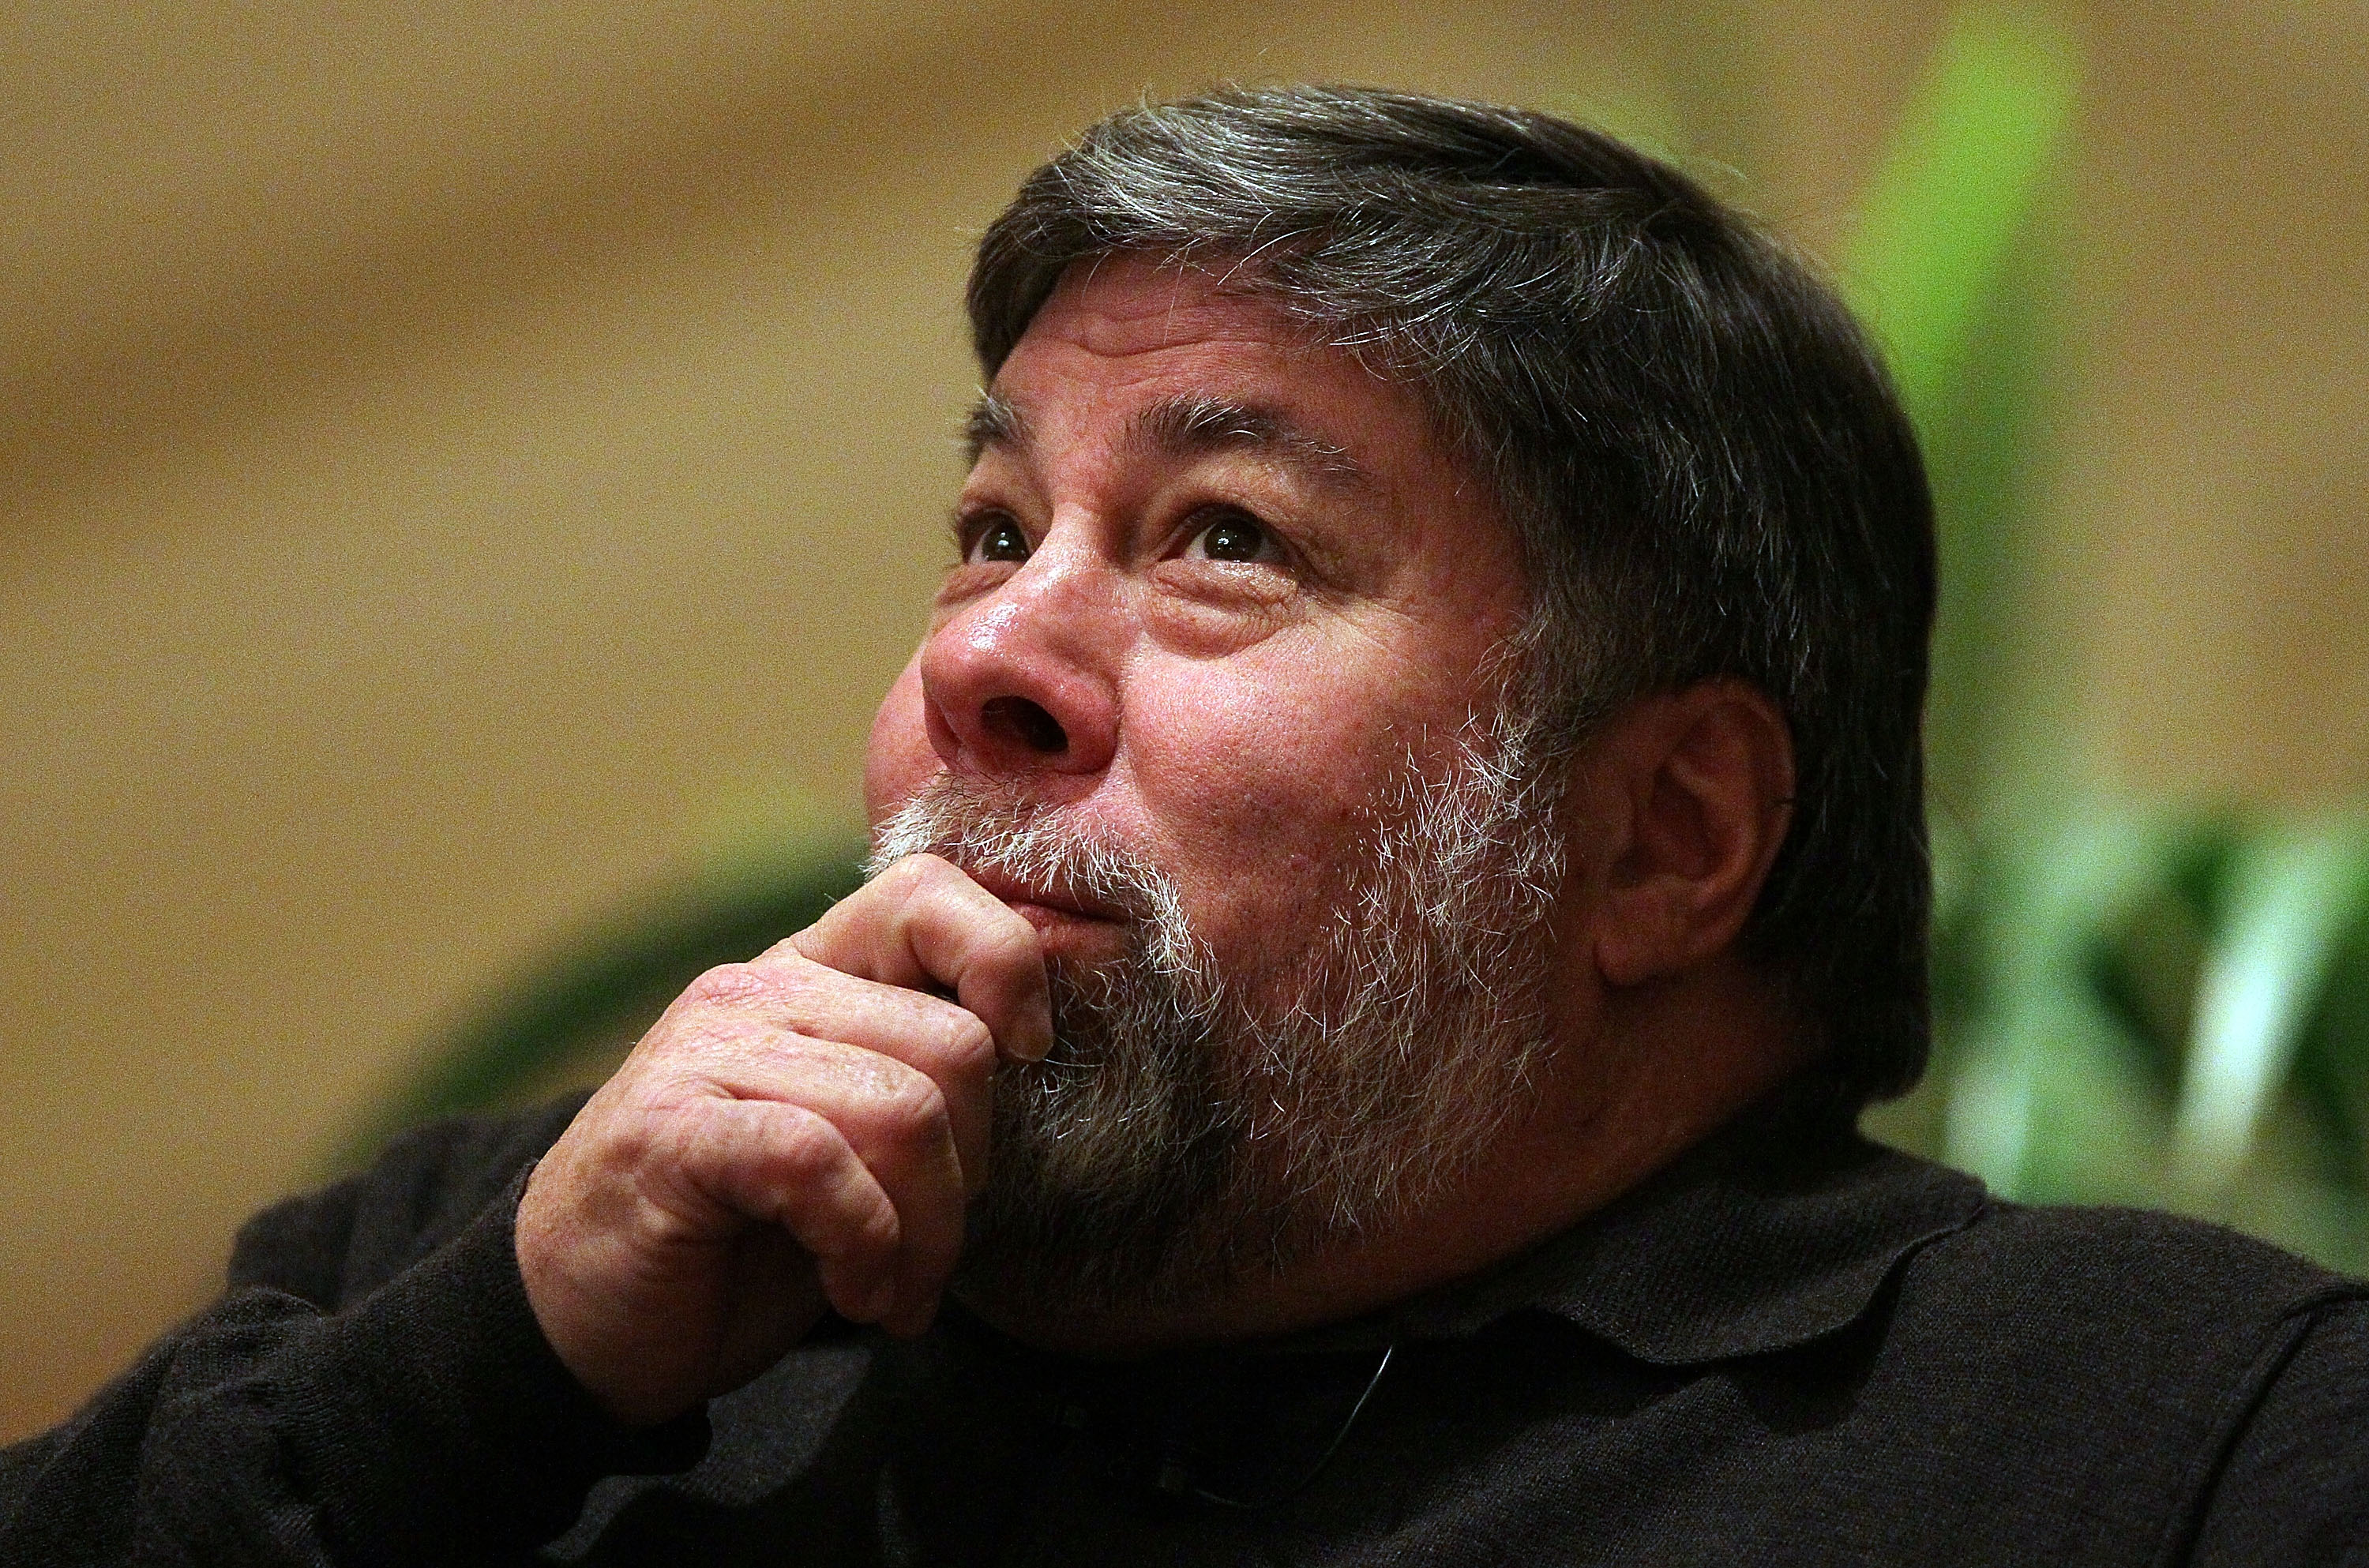 Apple Computer co-founder and philanthropist Steve Wozniak pauses while speaking at the Bay Area Discovery Museum's Discovery Forum on Feb. 1, 2010 in San Francisco.